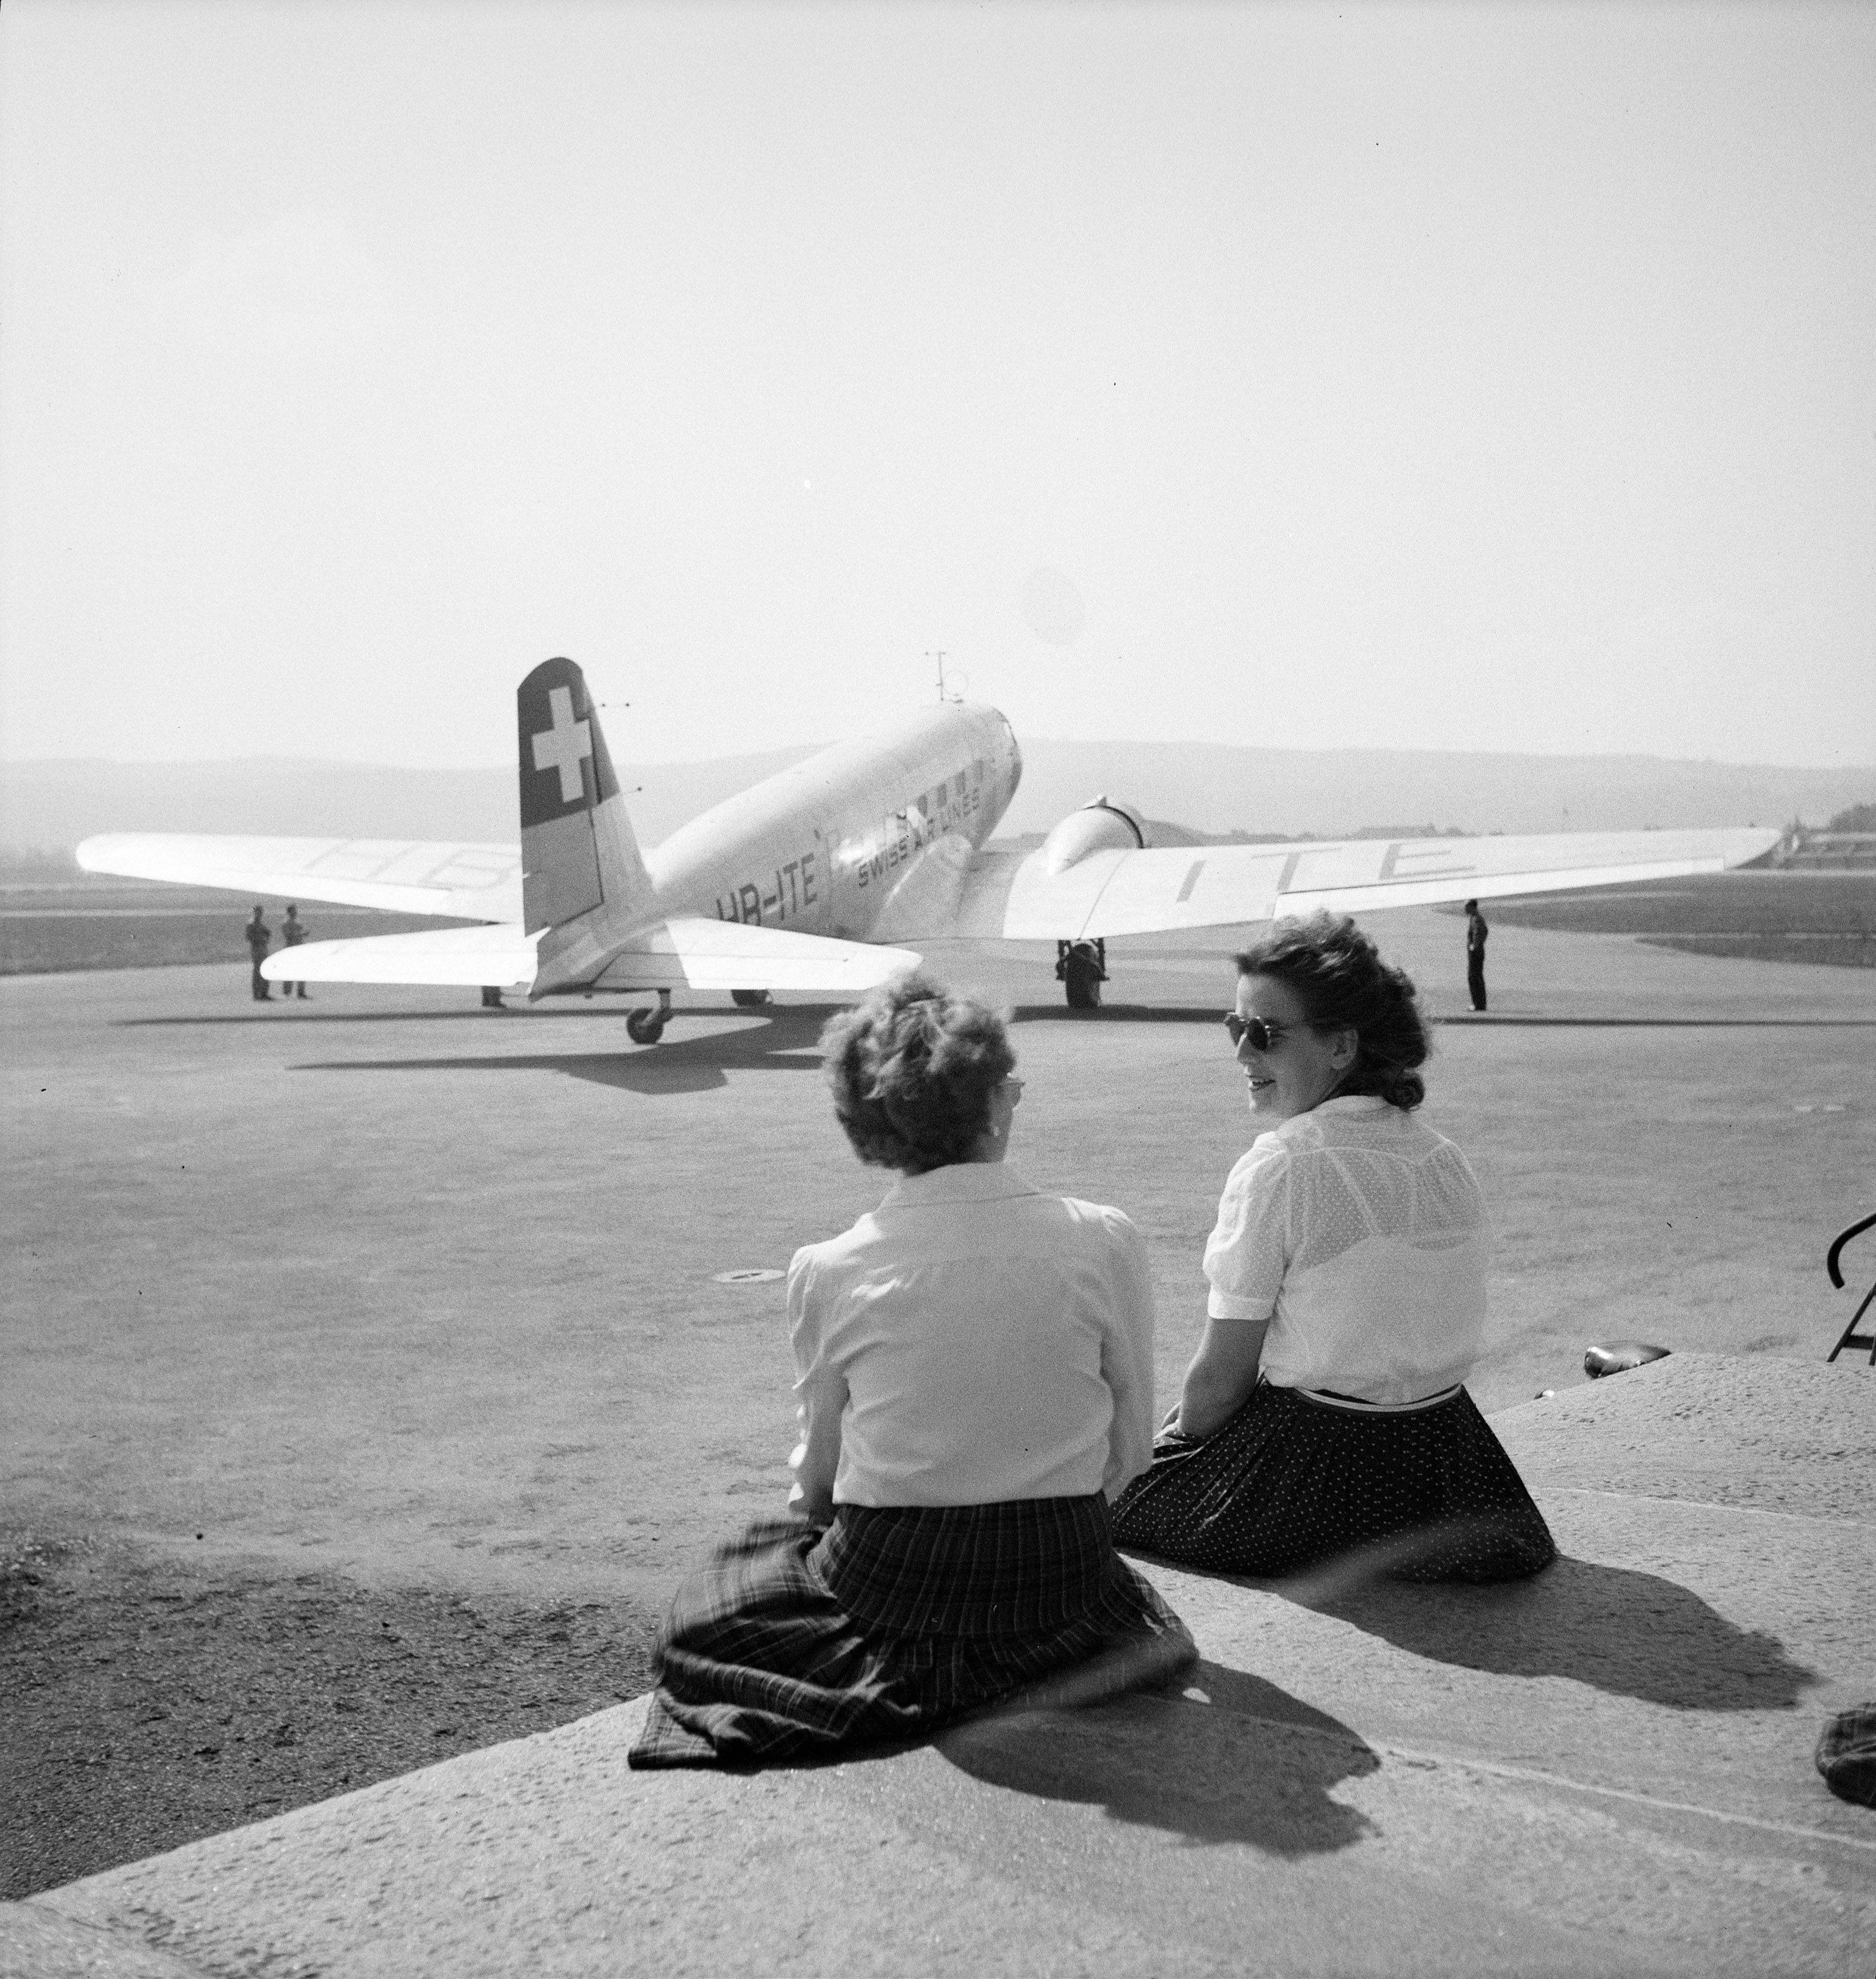 A DC-2 and early planespotters at Dübendorf in the 1940s